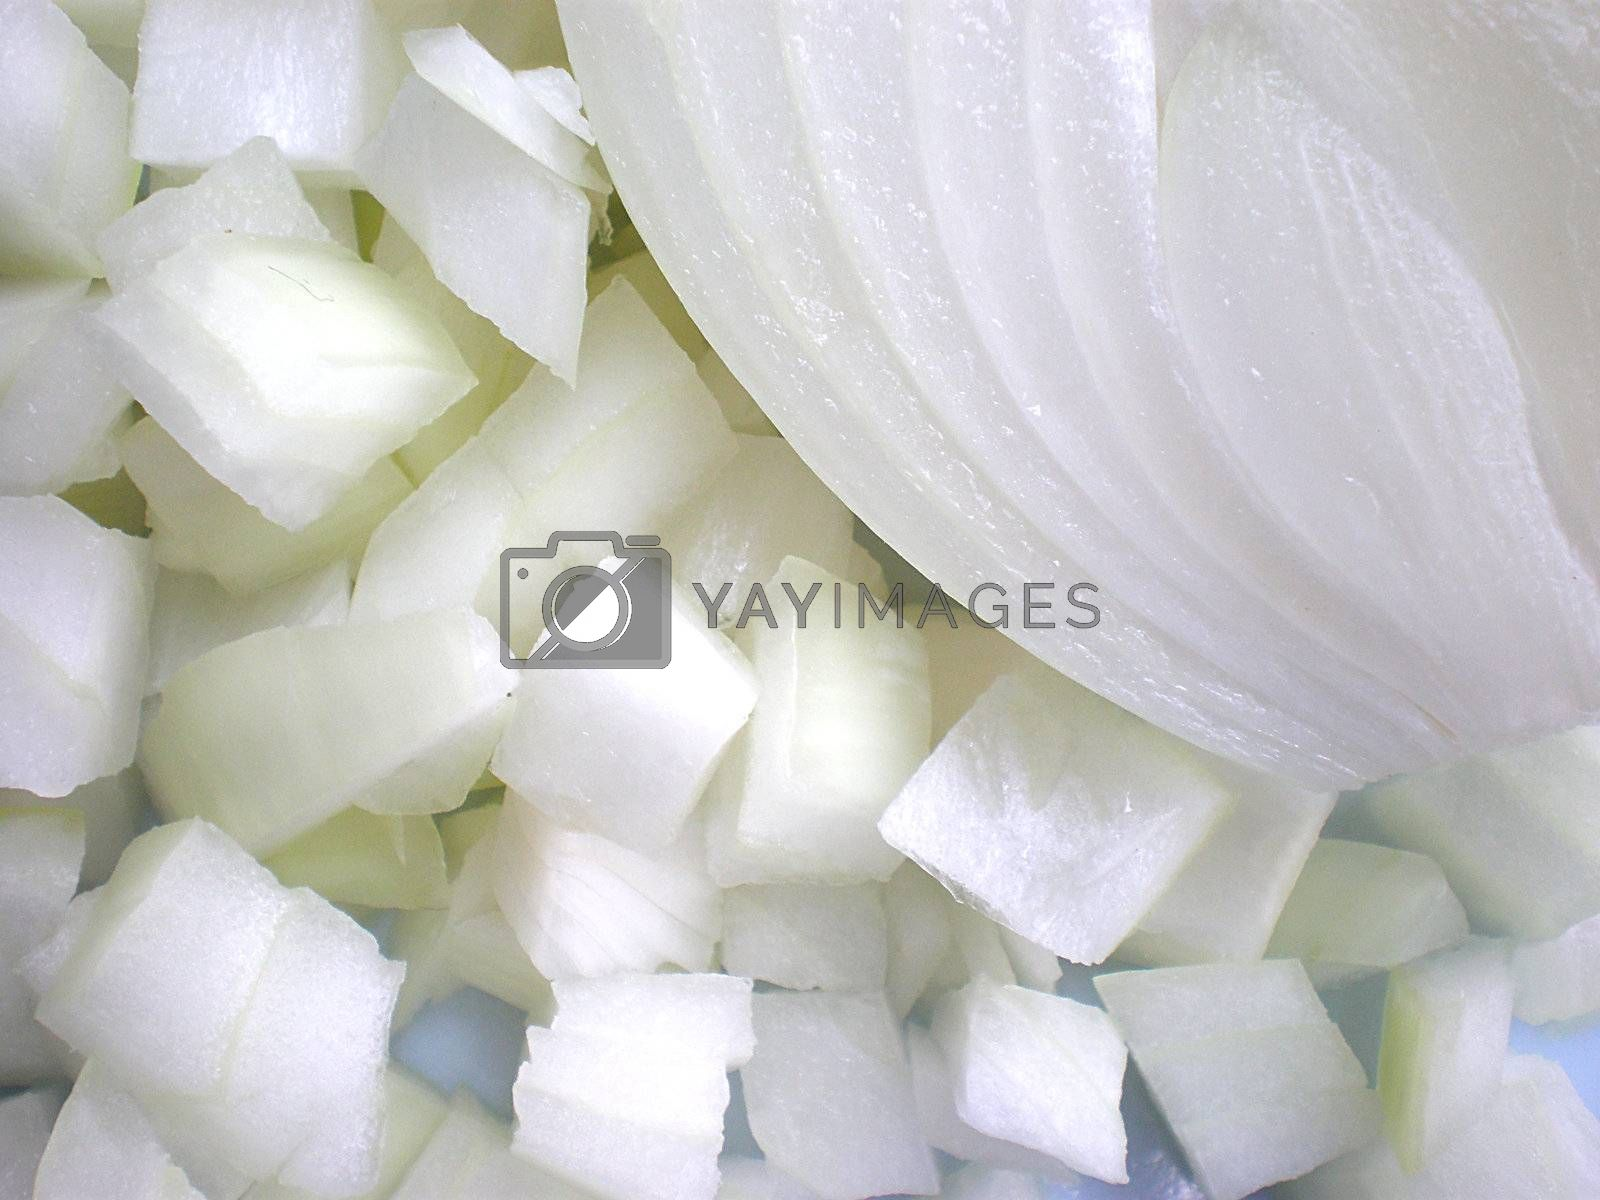 Royalty free image of onion by Dessie_bg